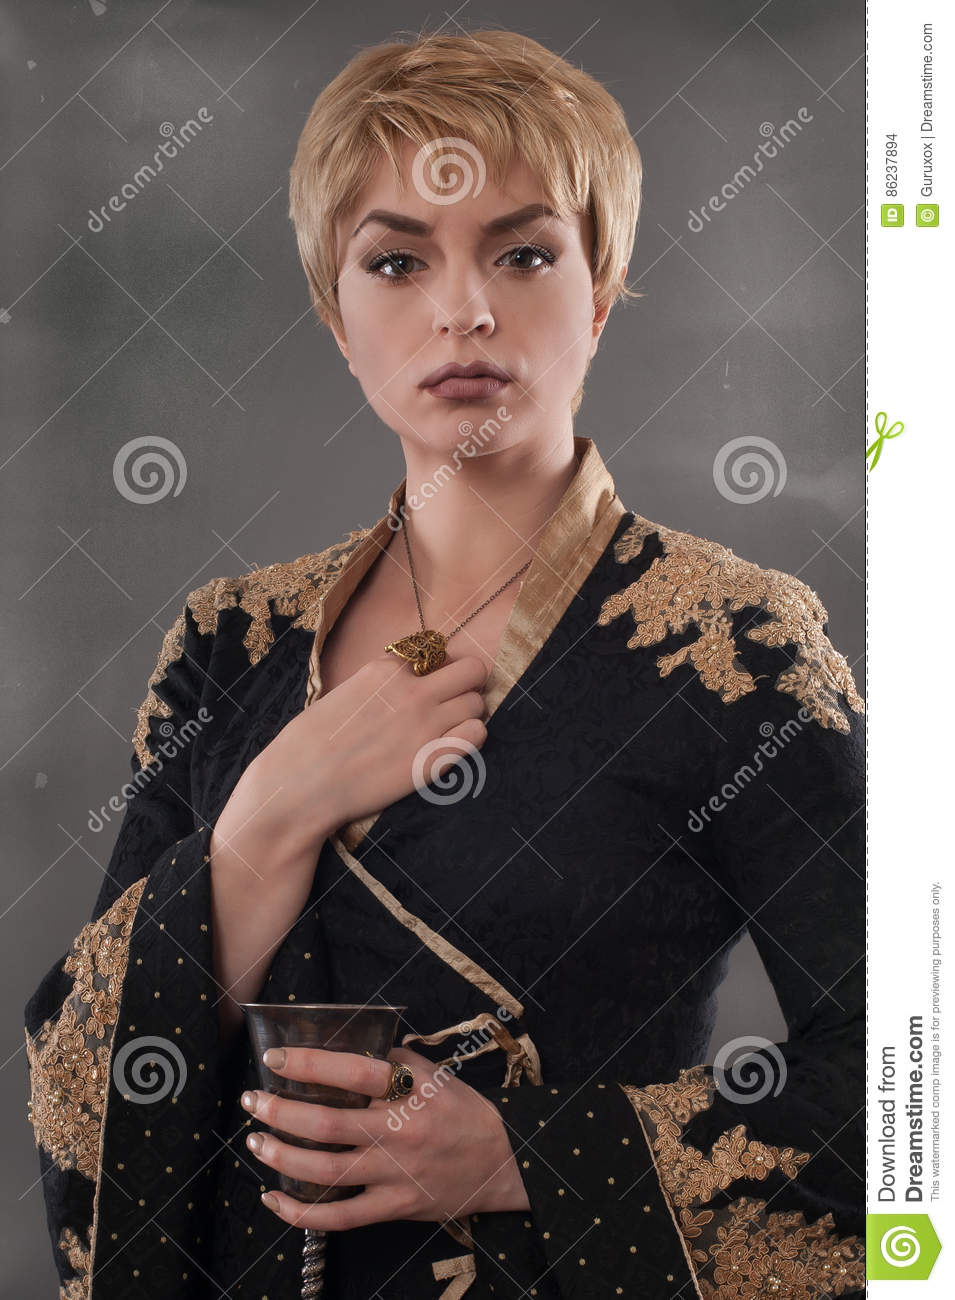 Renaissance Fashion Woman Holding Goblet With Wine Stock